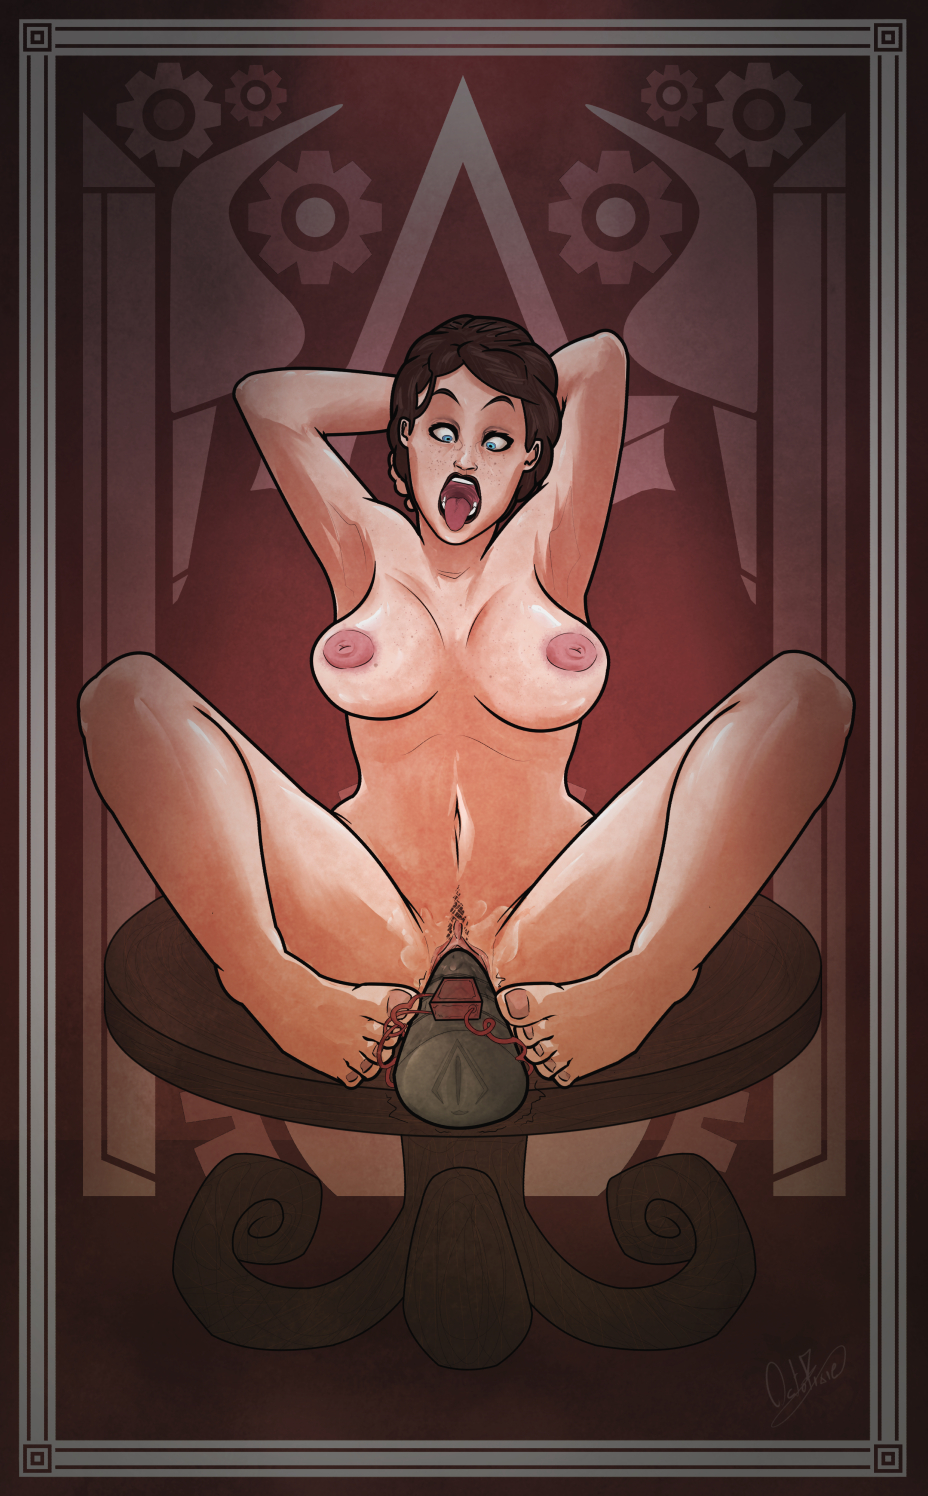 Assassins creed naked sex hentia queen